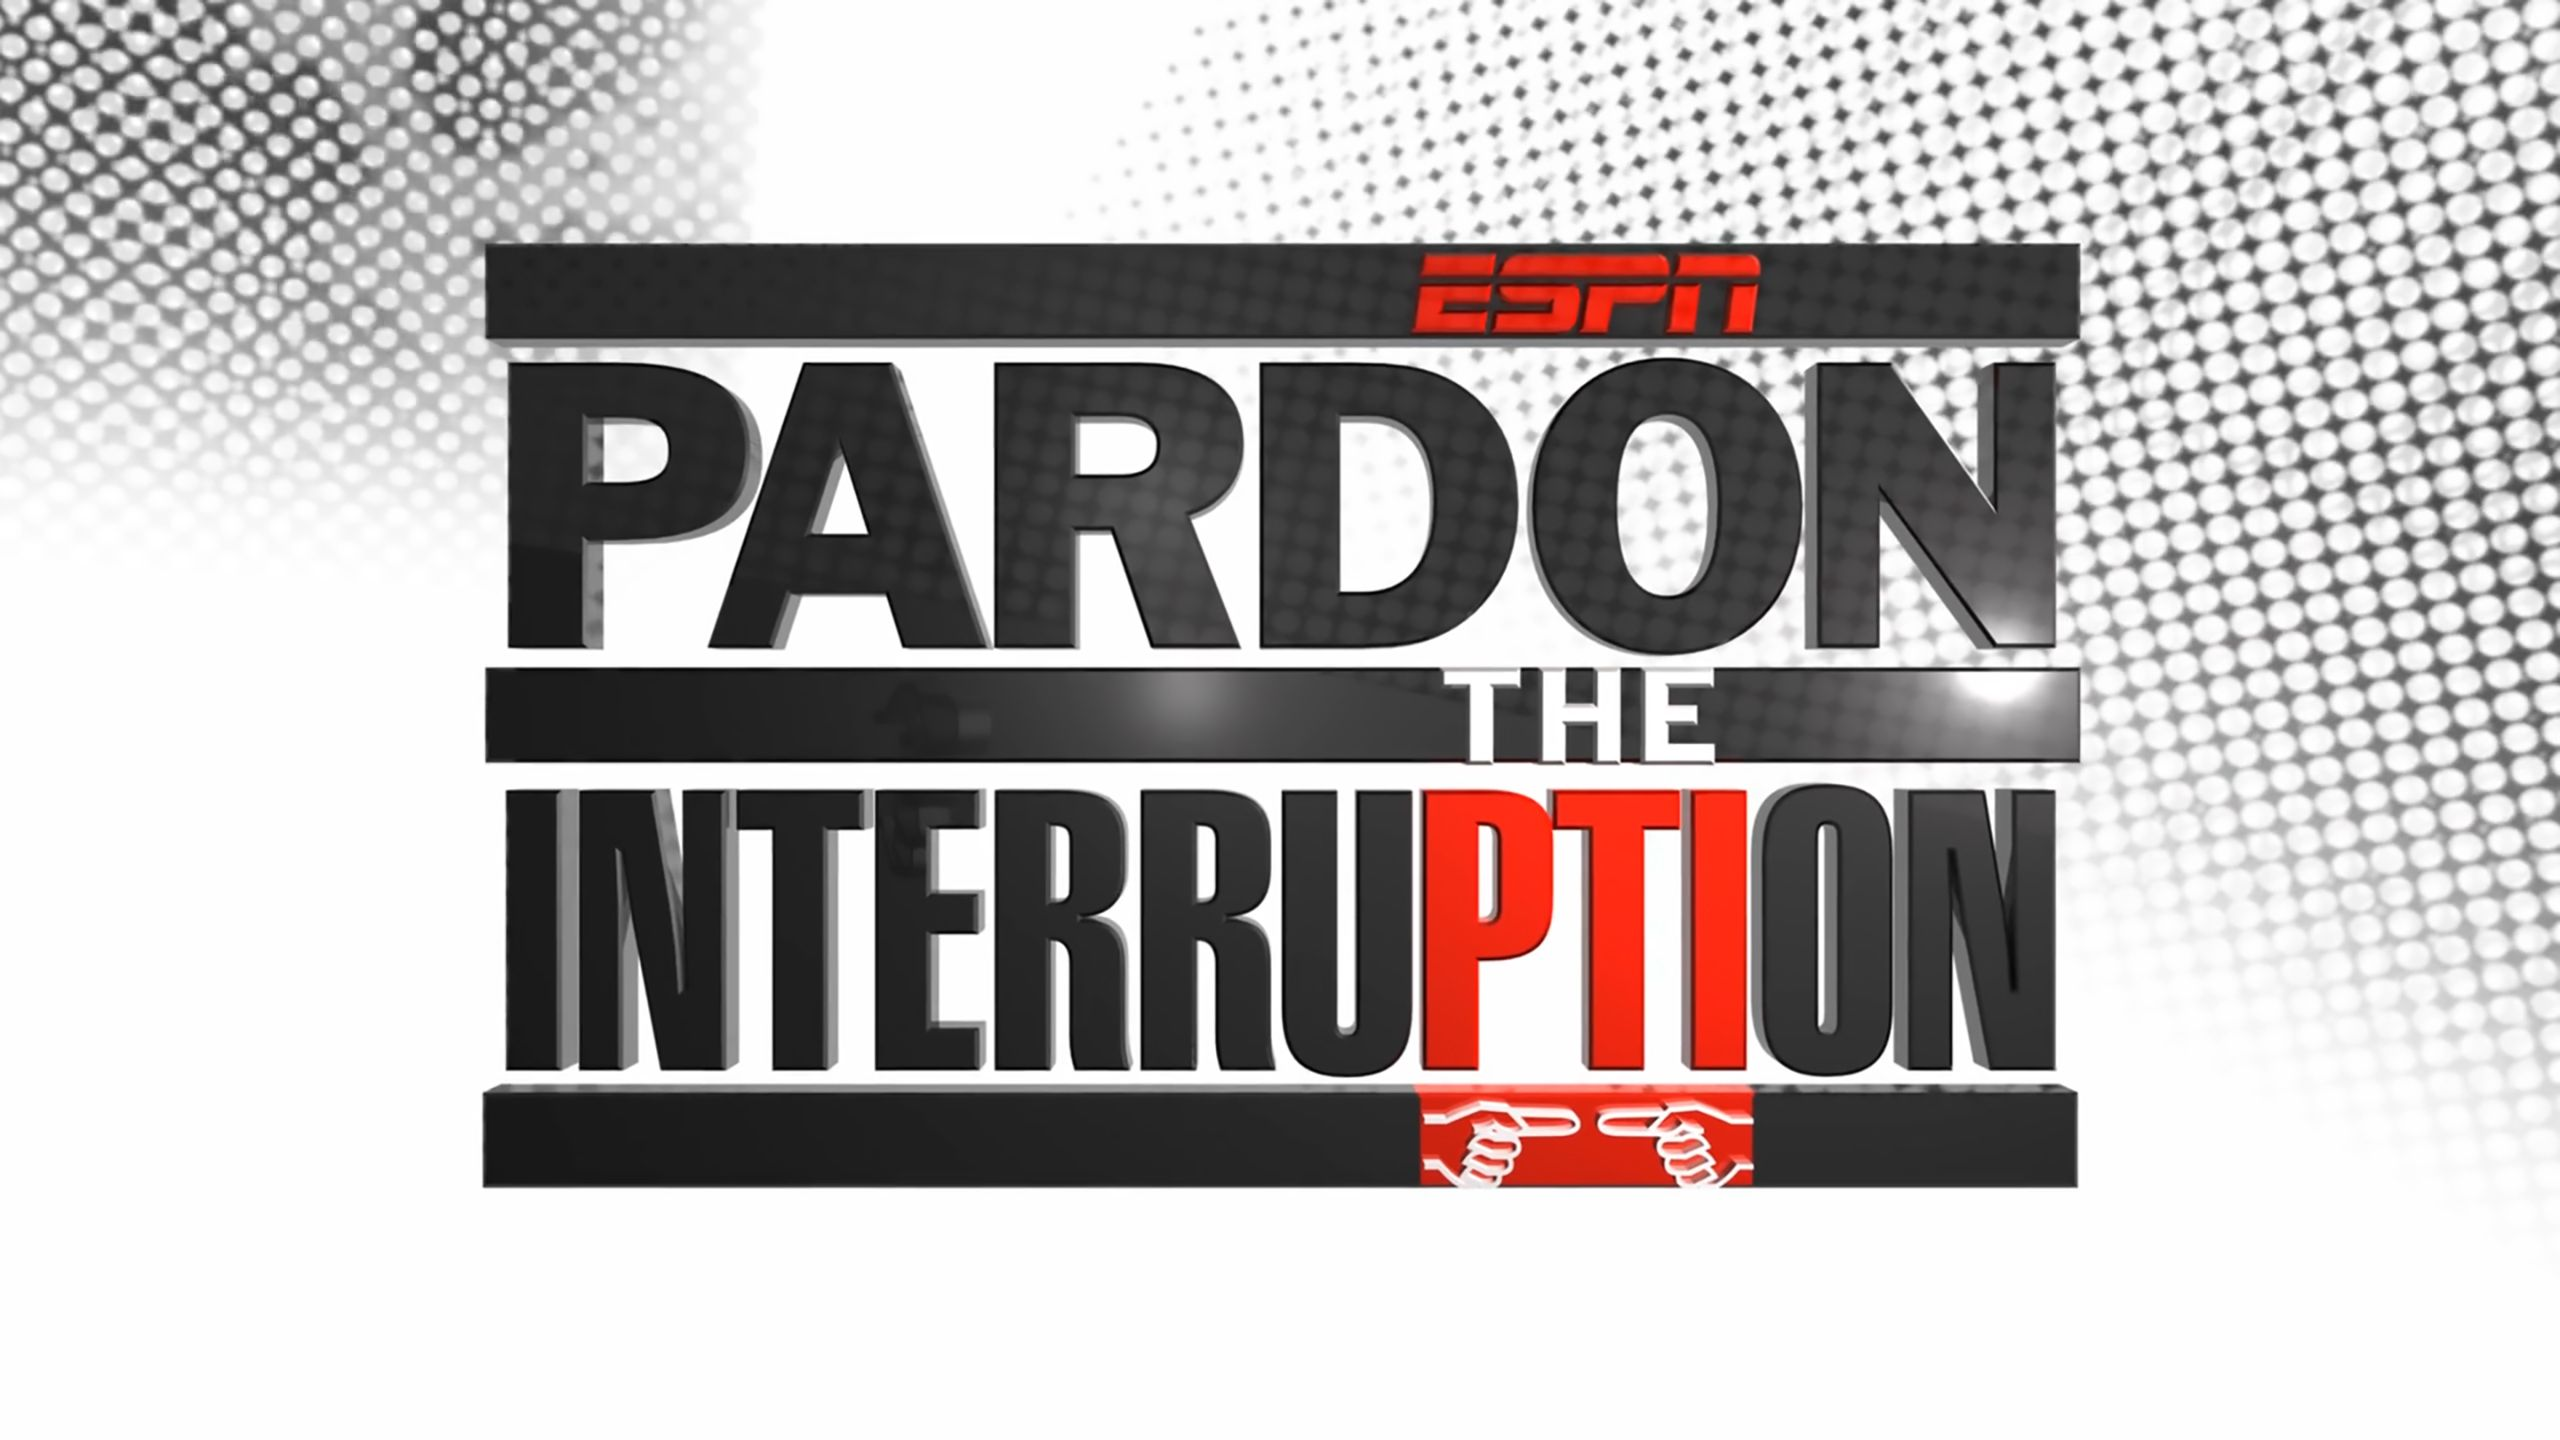 Fri, 2/23 - Pardon The Interruption